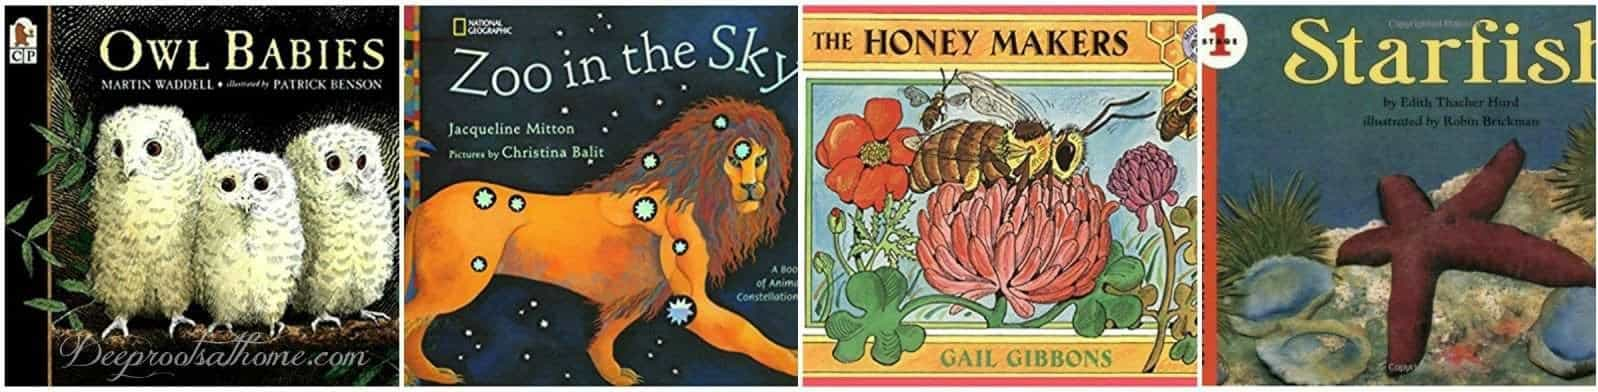 57 K - Gr. 5 True Story Nature & Science Books For Curious Kids. 4 books on the reading list.